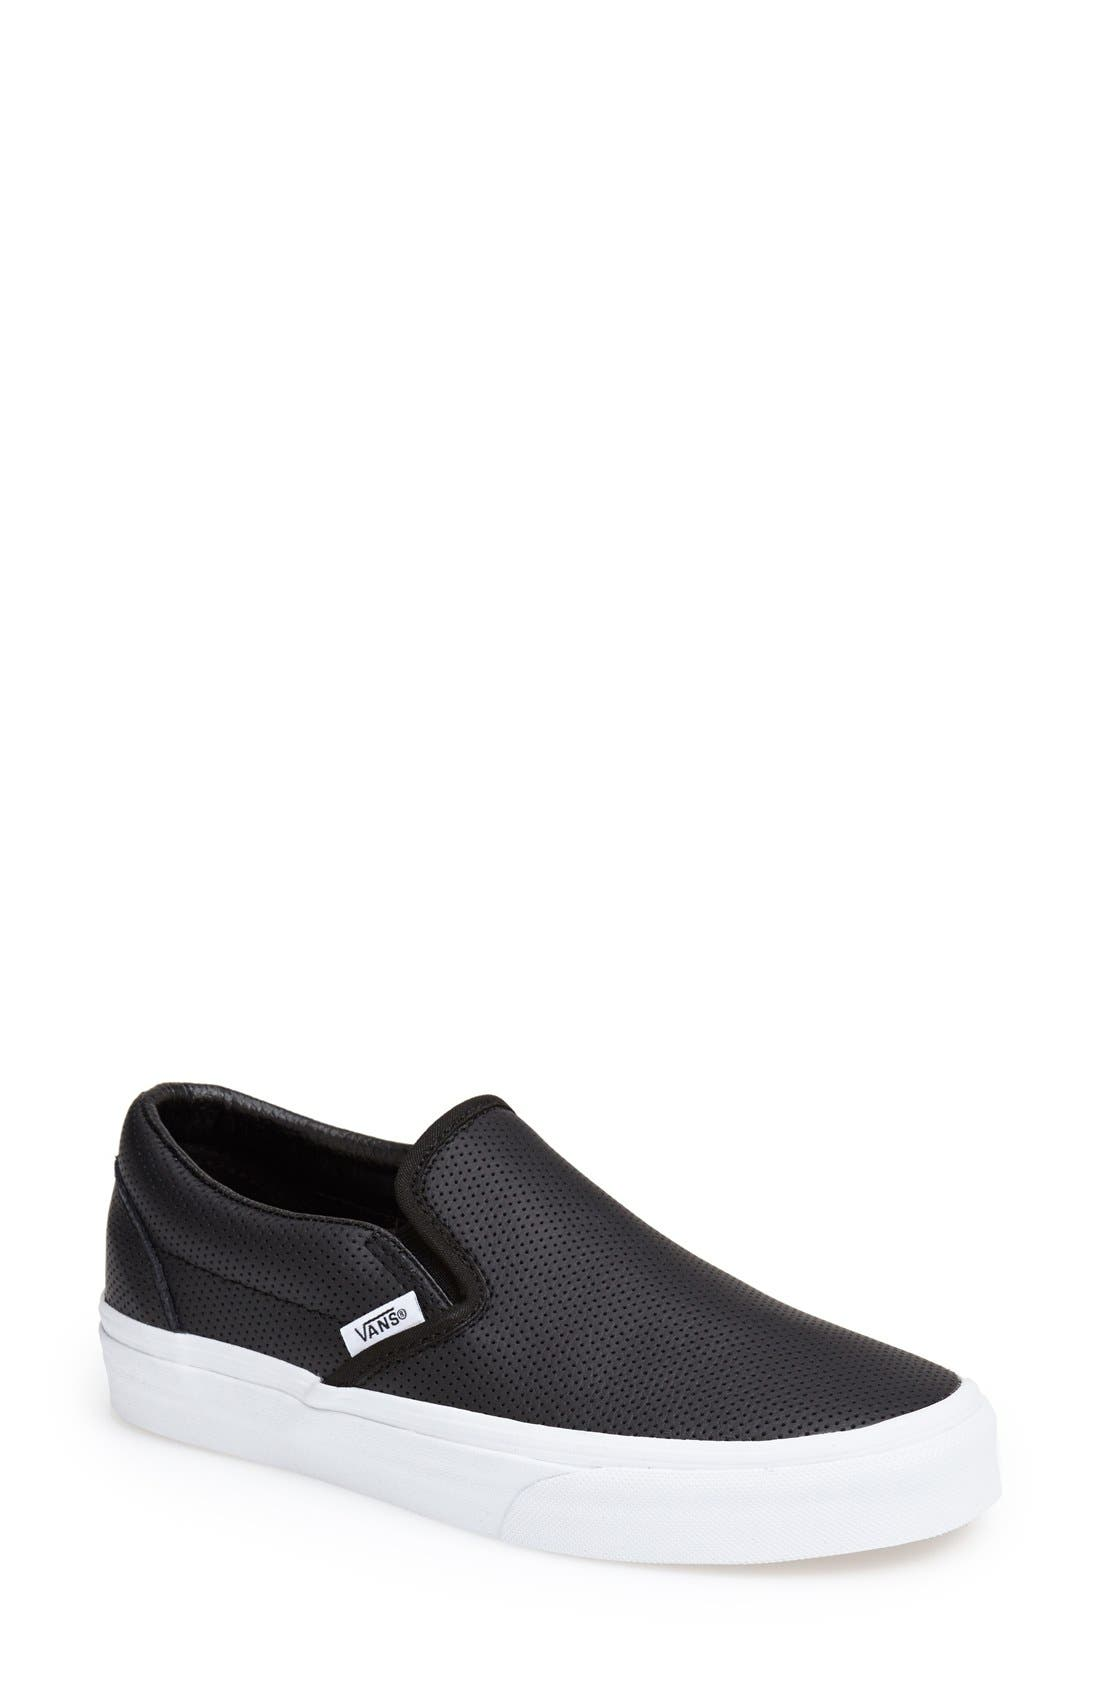 all black leather vans slip ons